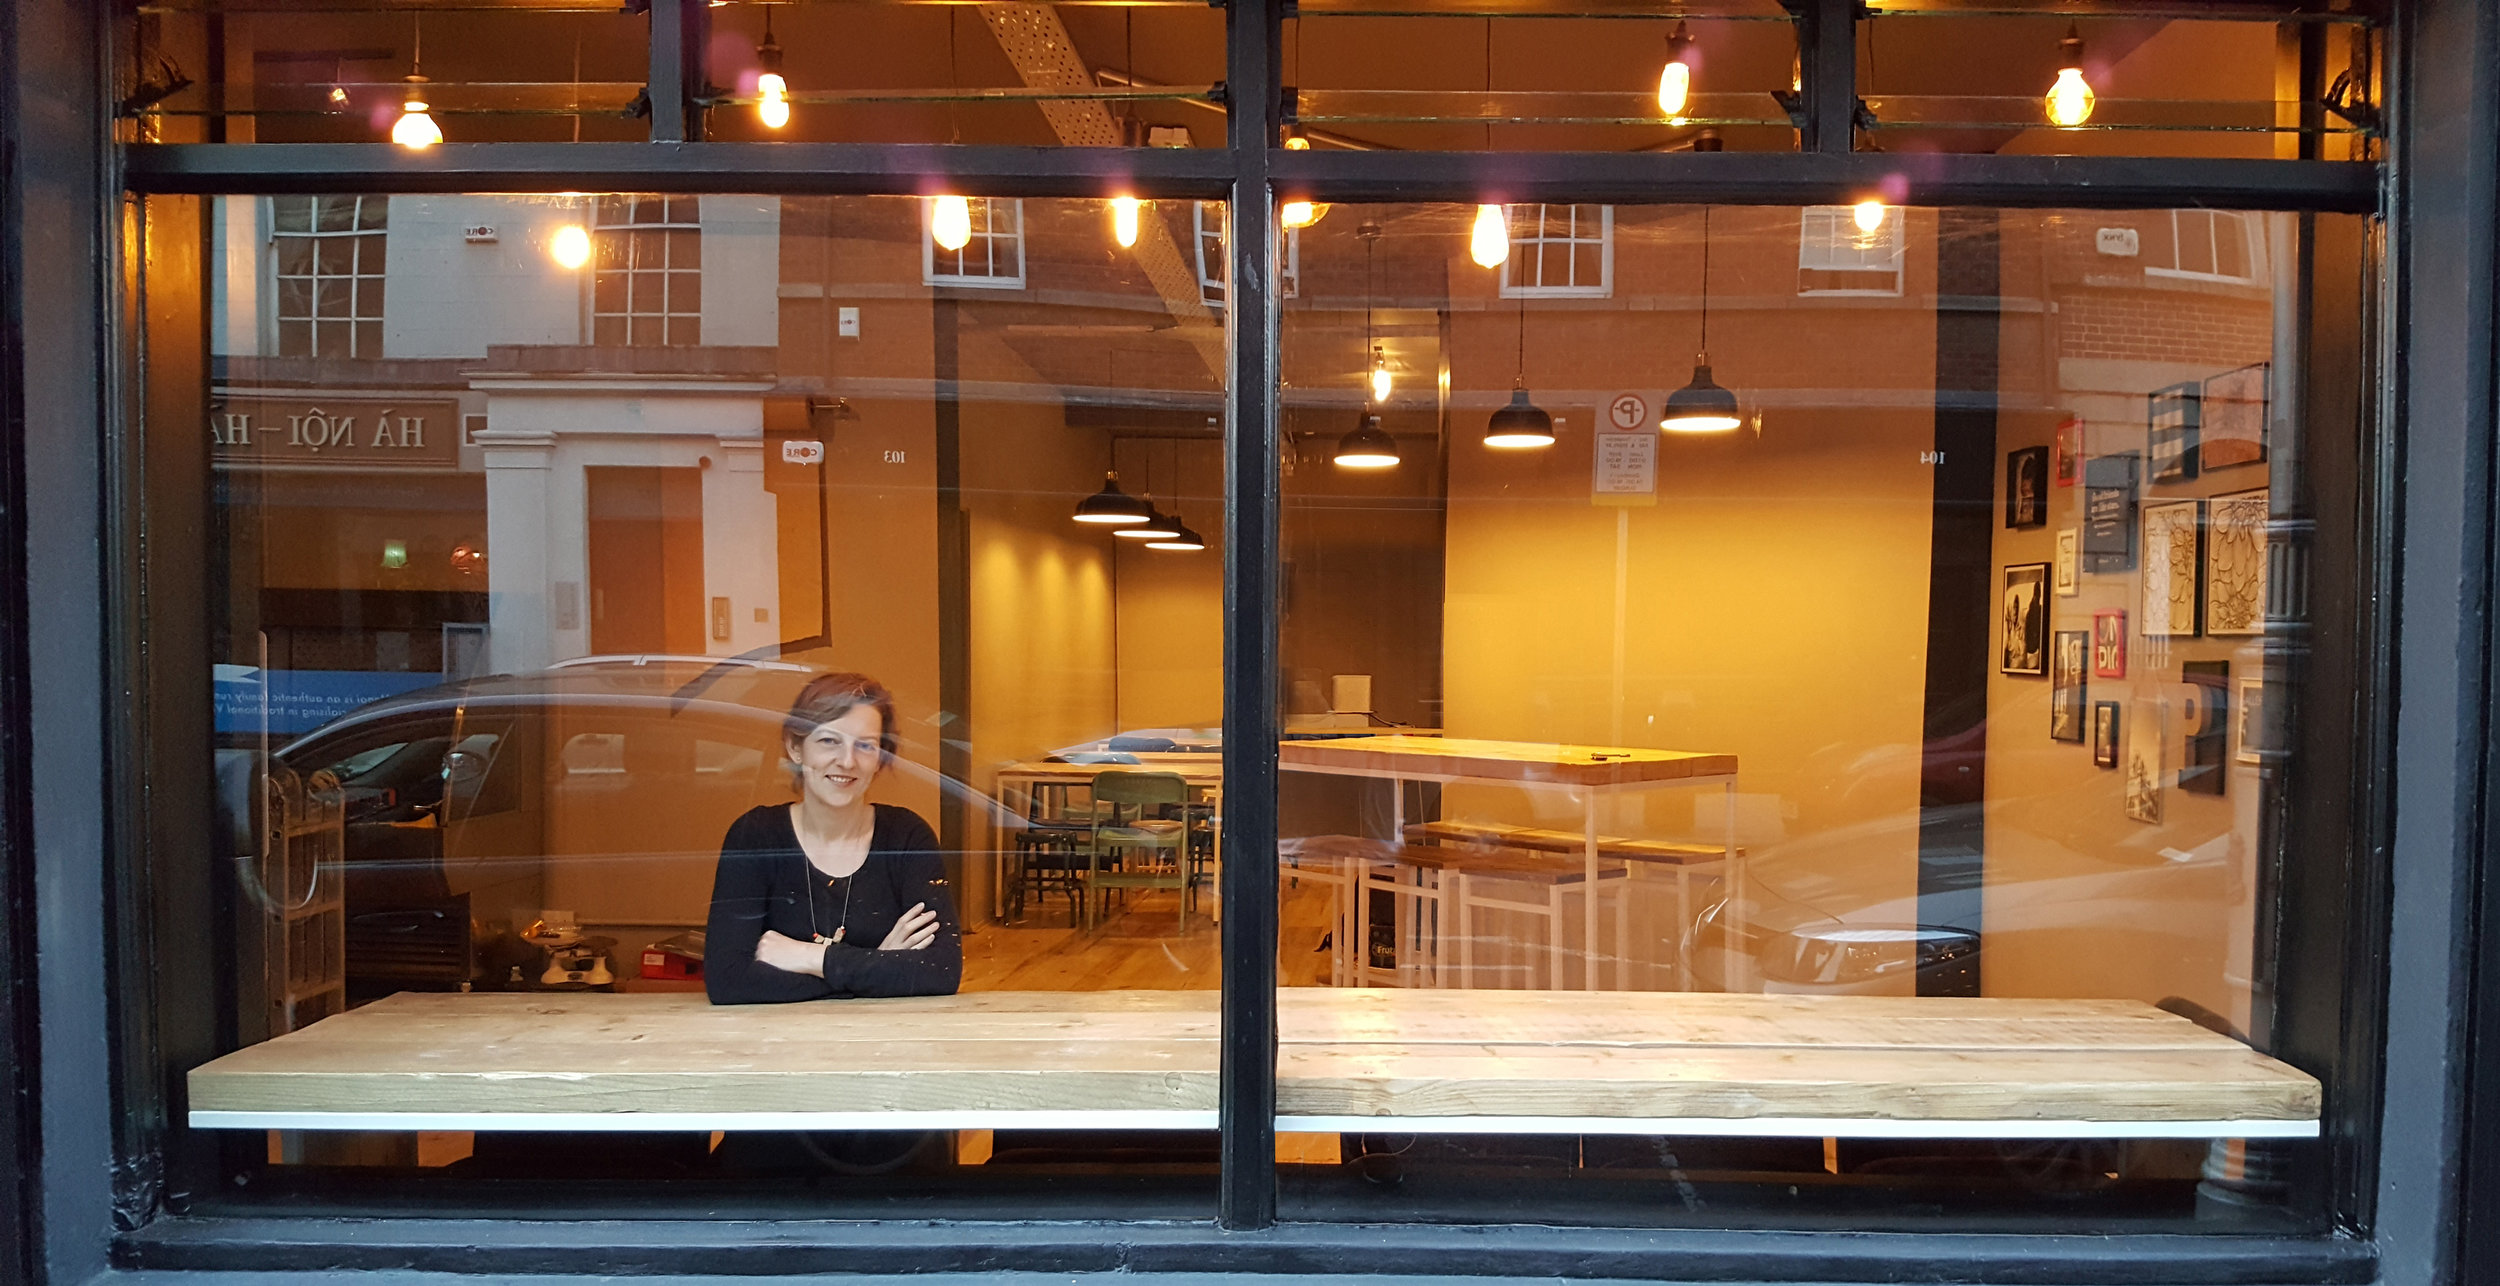 Window-View-Pigs-Back-Eatery-Fitout-Tricia-Harris-Designs.jpg